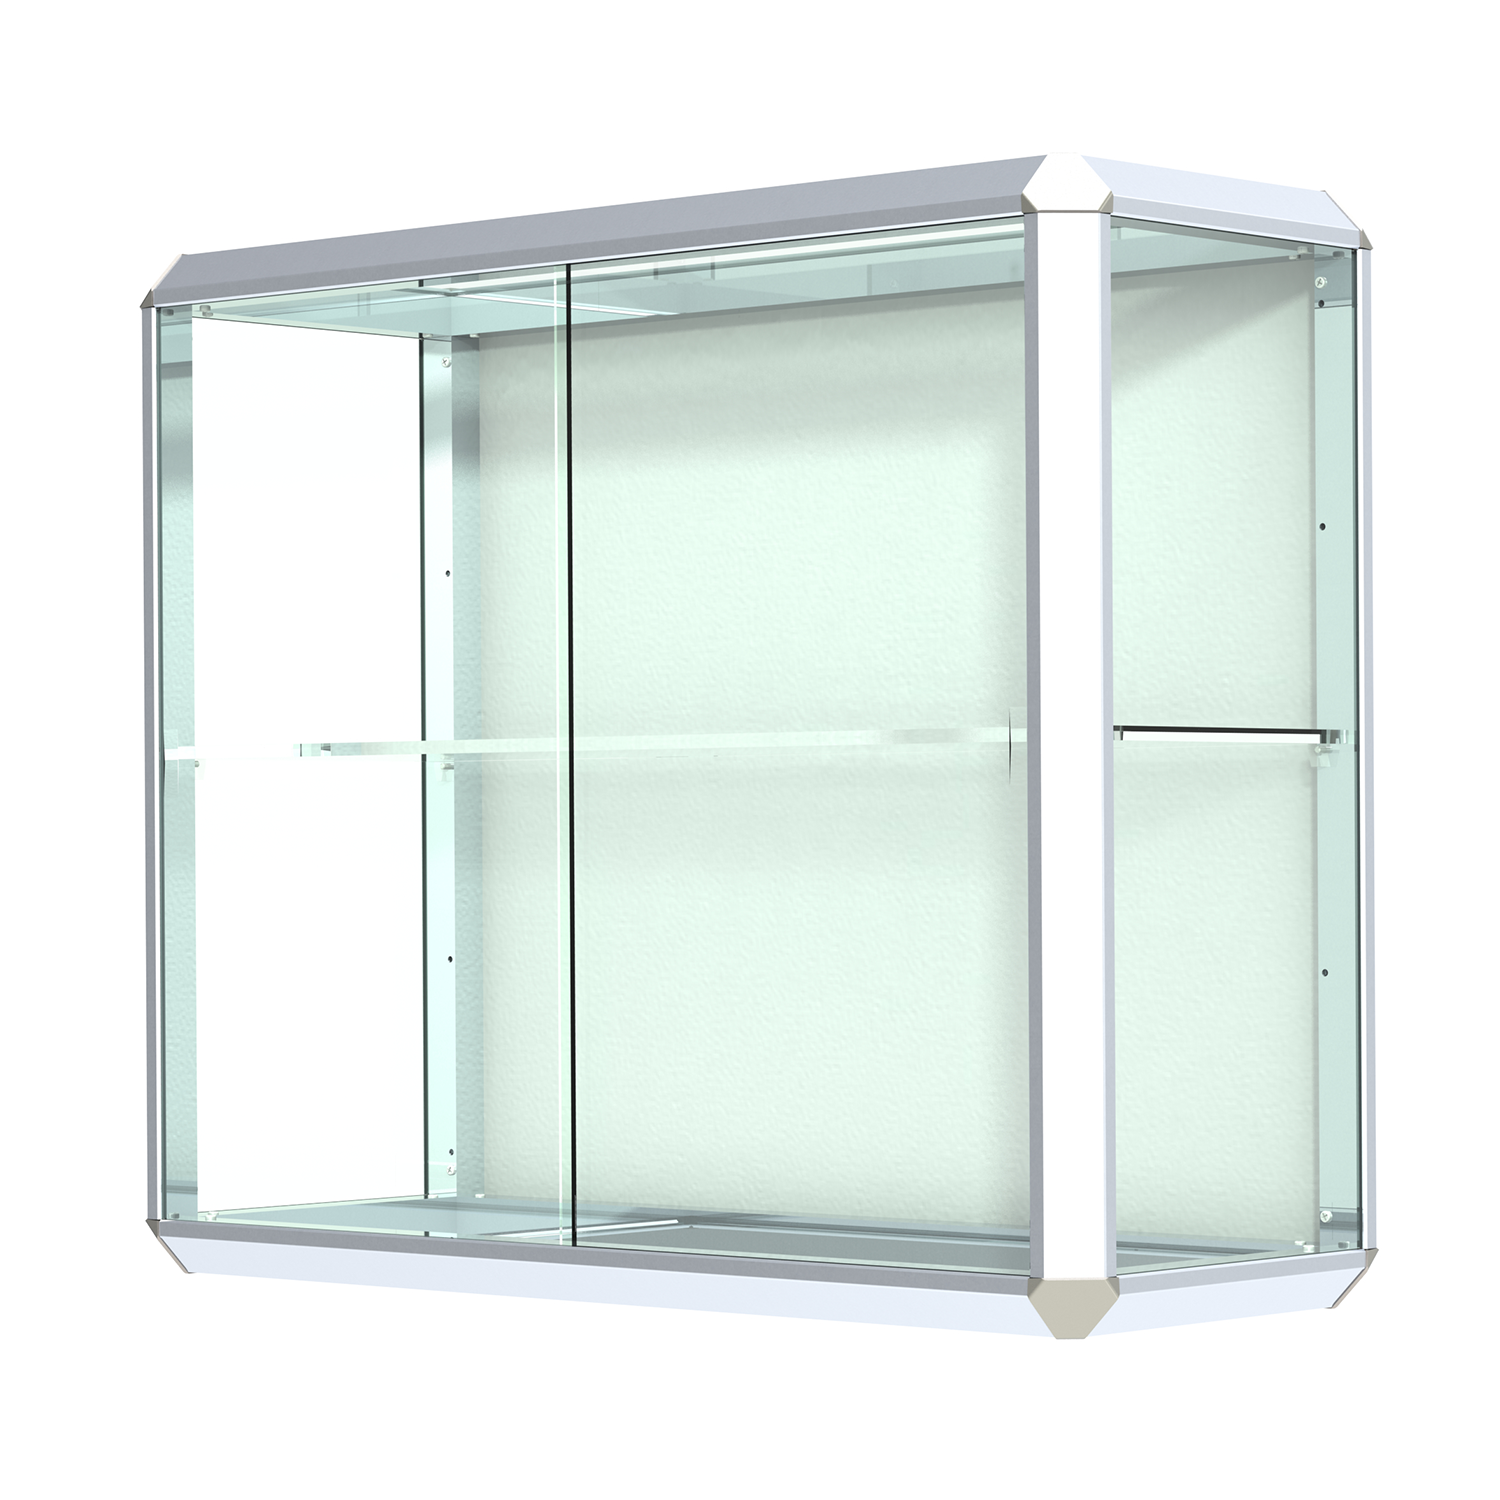 Chrome Finished Aluminum Frame Wall Mount Display Case